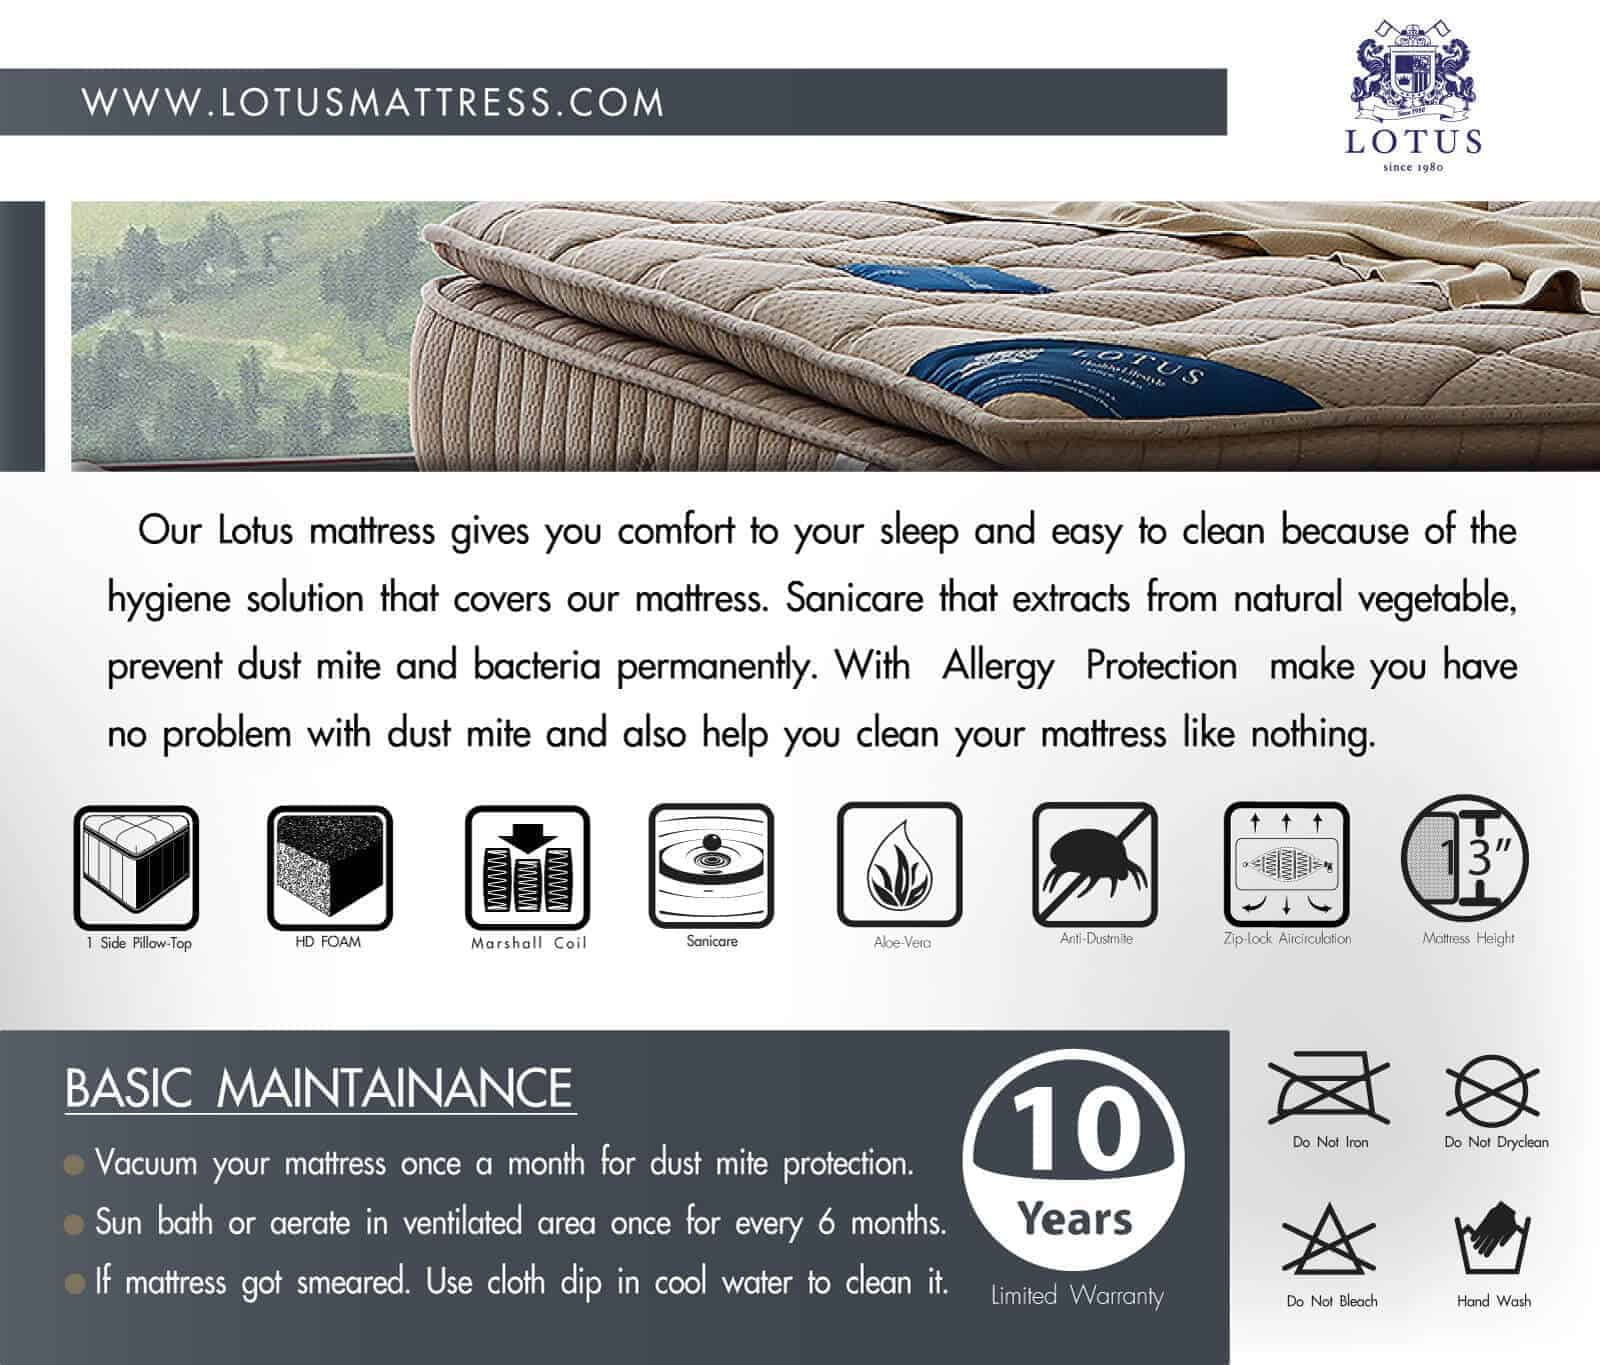 Lotus Foam Spring Mattress Marshall Deluxe III - Good Balance Mattress - Thickness 13 inches - Warranty 10 years 13